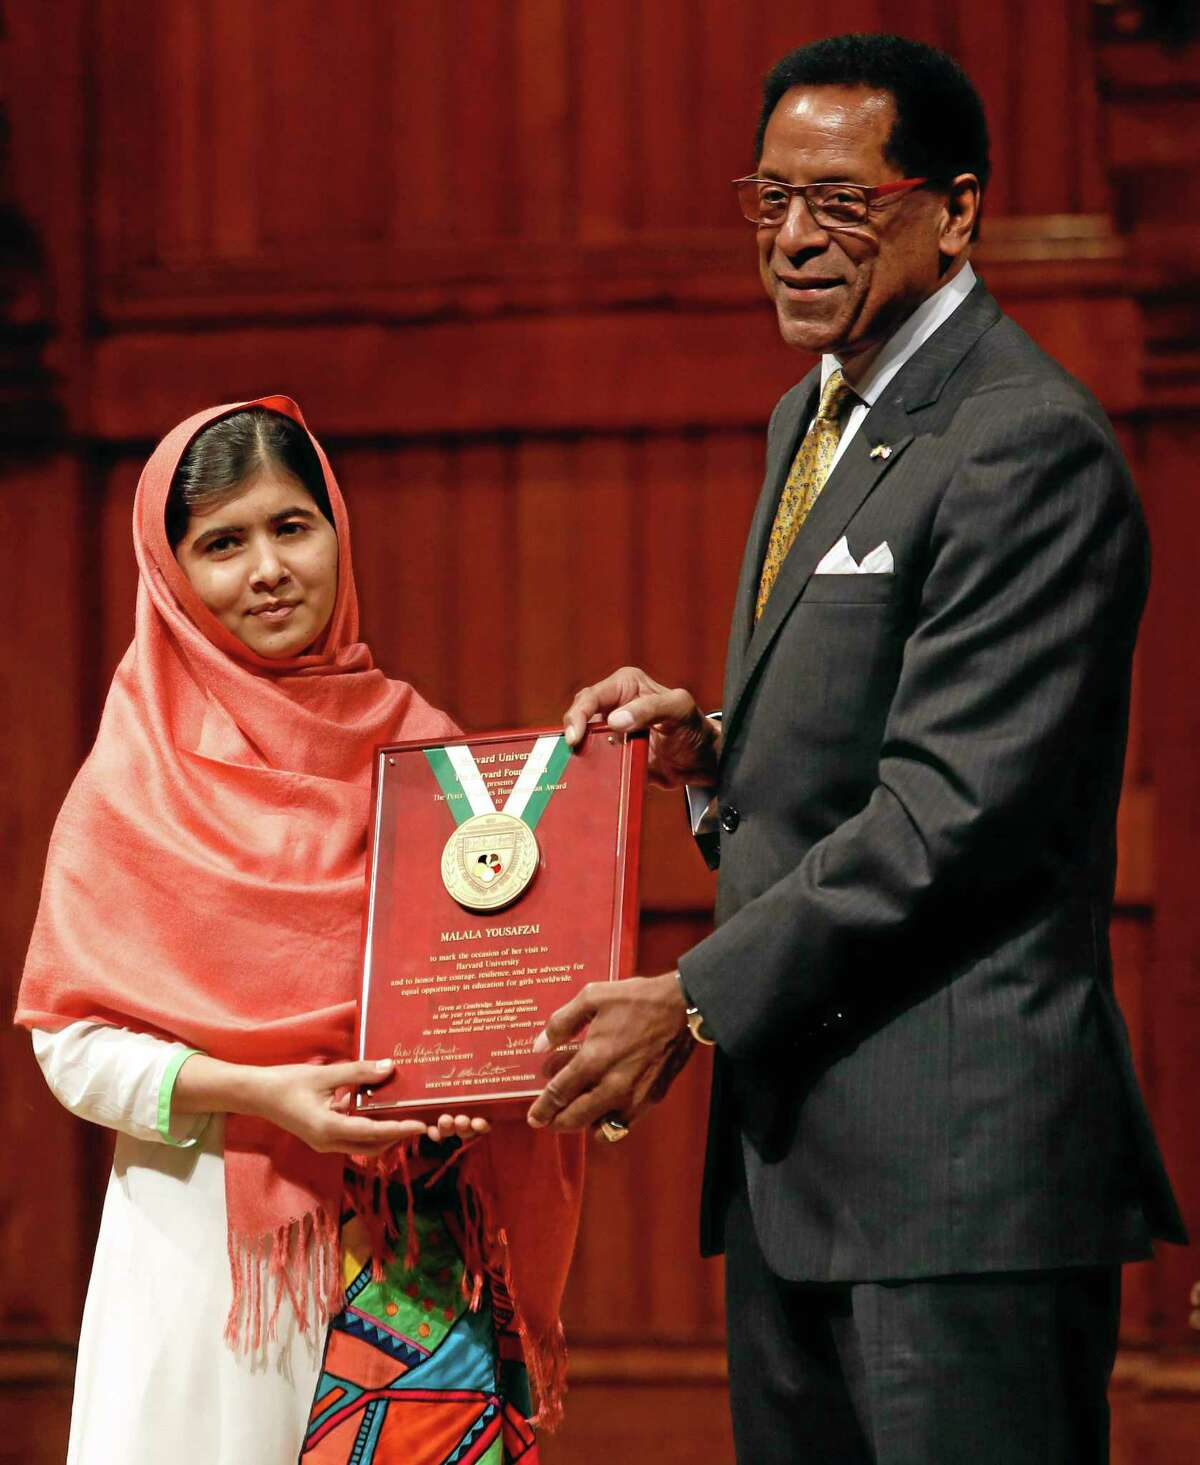 Malala Yousafzai, left, is presented with the 2013 Peter J. Gomes Humanitarian Award by Director of the Harvard Foundation and Professor of Neurology at Harvard Medical School Dr. S. Allen Counter, right, at Harvard University Friday, Sept. 27, 2013, on the school's campus in Cambridge, Mass. The Pakistani teenager, an advocate for education for girls, survived a Taliban assassination attempt last year on her way home from school. (AP Photo/Jessica Rinaldi)